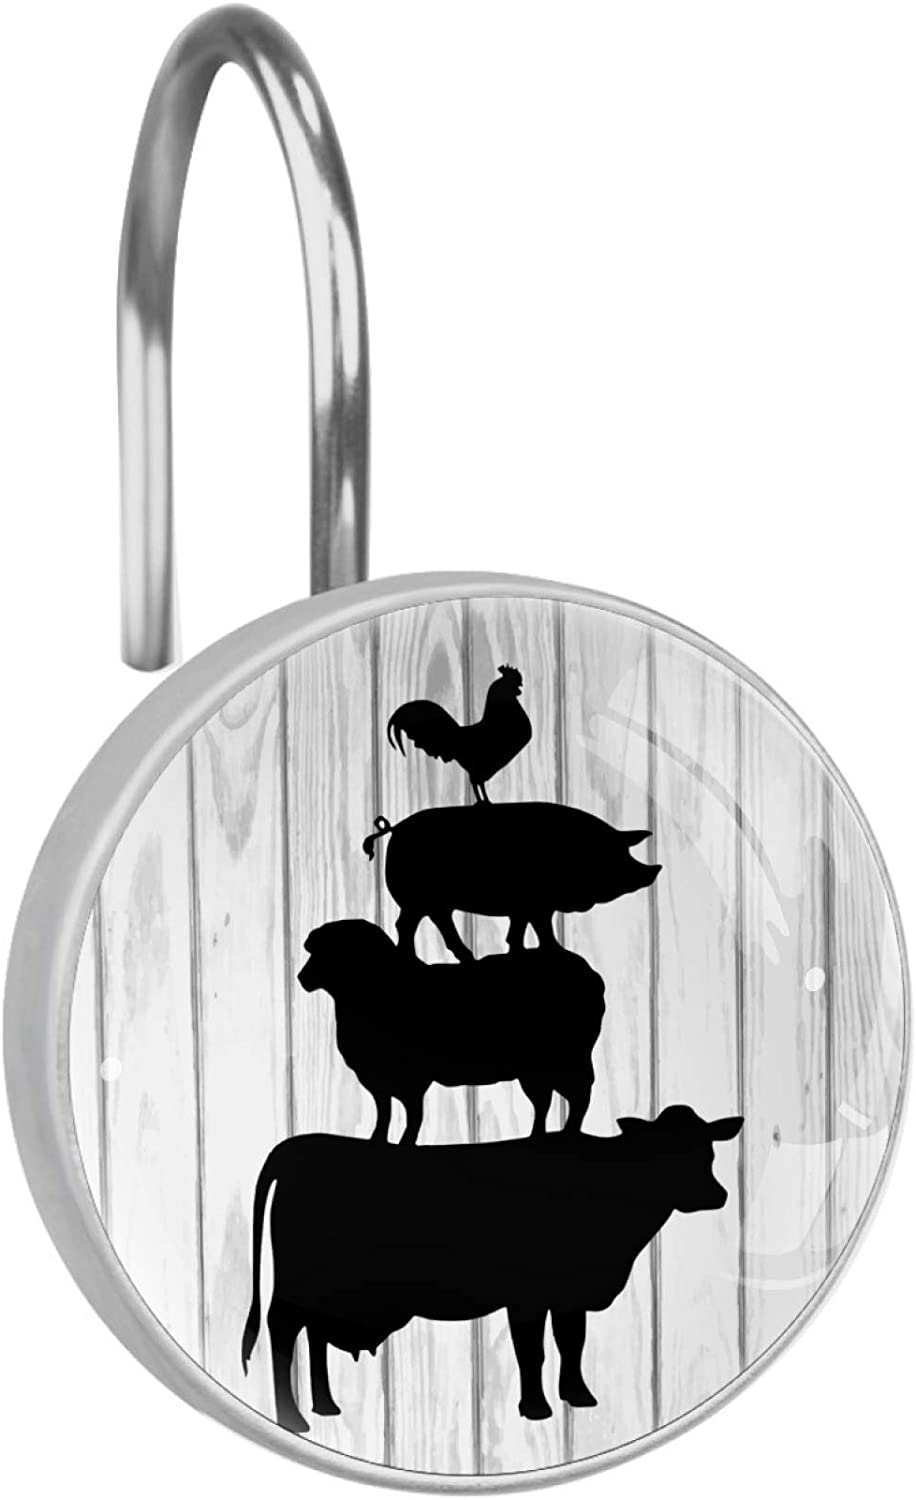 Rustic Farmhouse Cow Chicken Pig Animal Shower Curtain Hooks Set of 12, Stainless Steel Rust-Resistant Shower Hook Ring Decorative Hanger Rings for Bathroom Kids Room Living Room Bedroom Home Decor